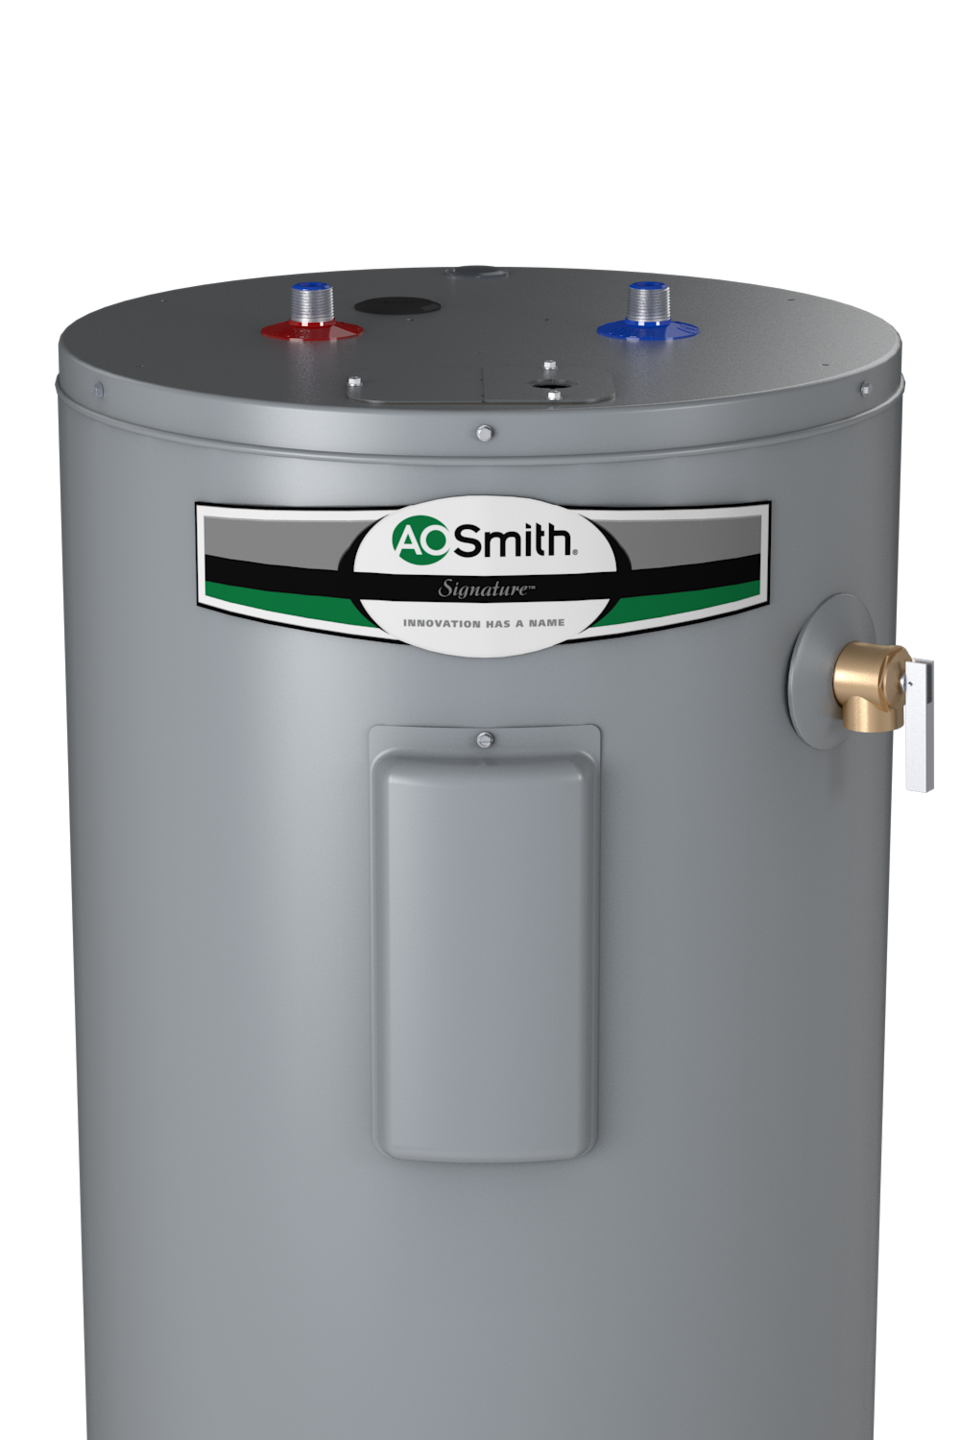 Shop Ao Smith Signature 50 Gallon Tall 6 Year Limited 4500 Watt Water Heater Wiring Diagram Standard Electric Series The Select